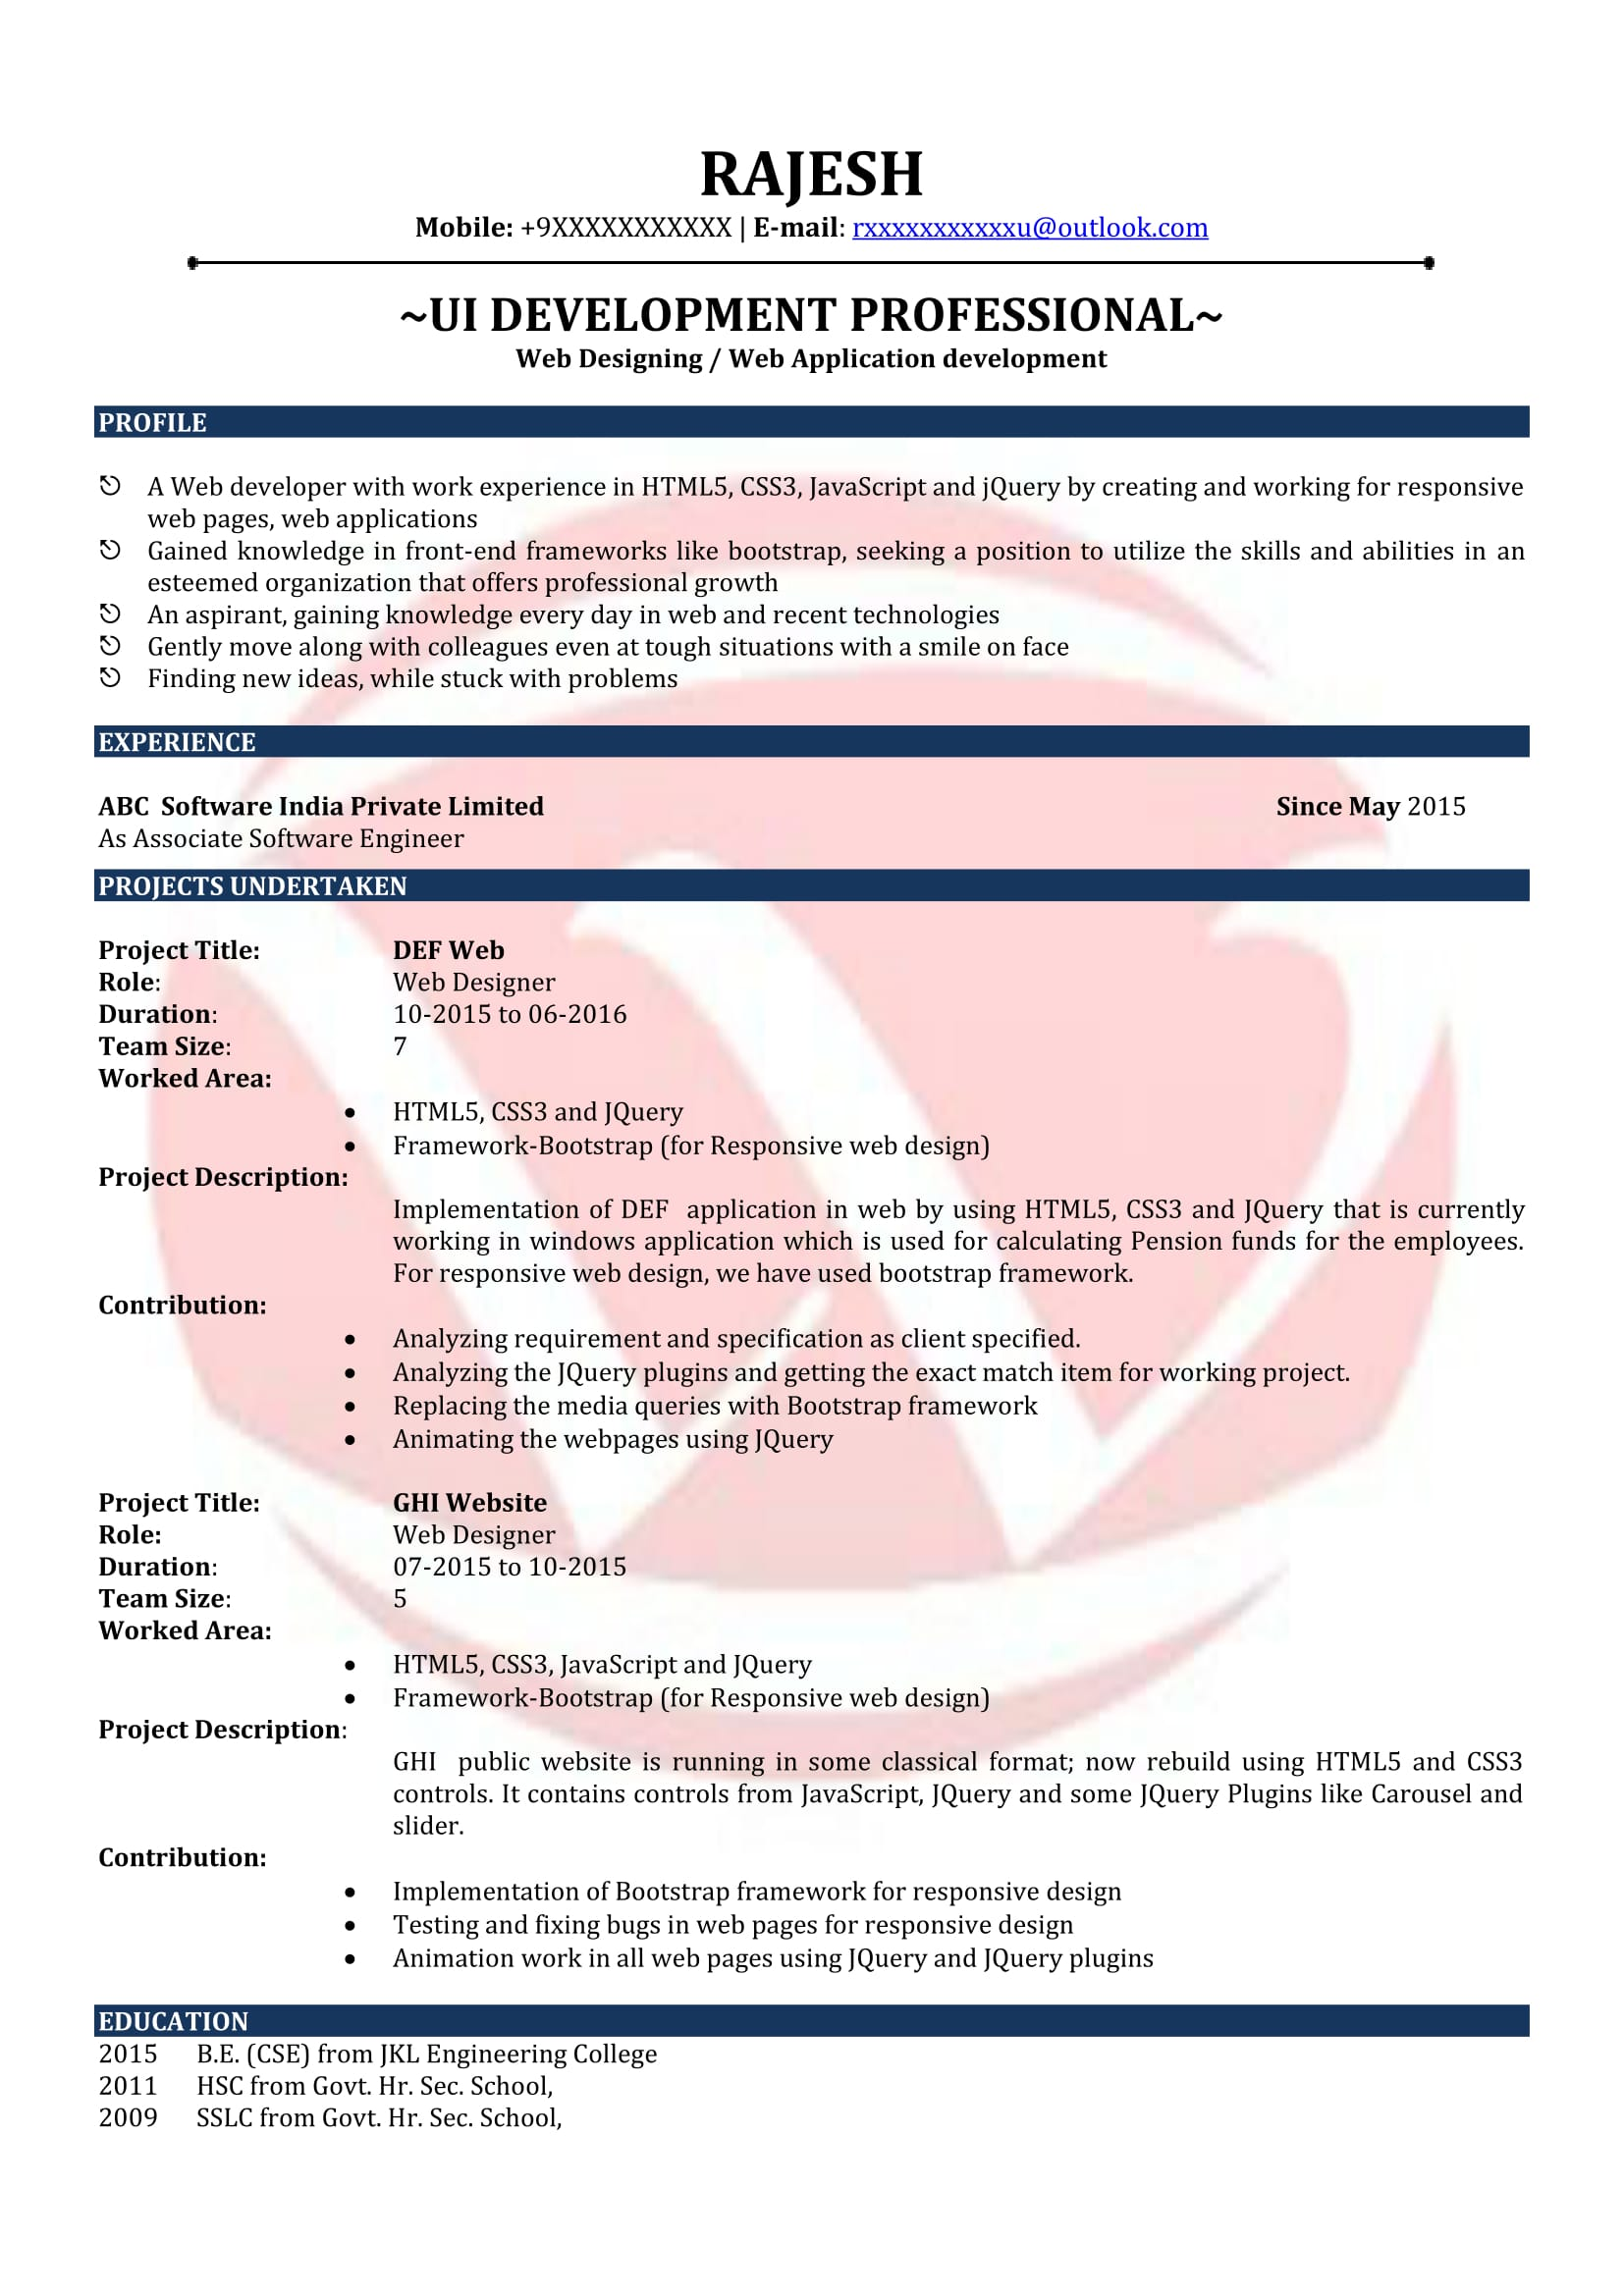 web designer sample resume - Resume Format For Web Designer